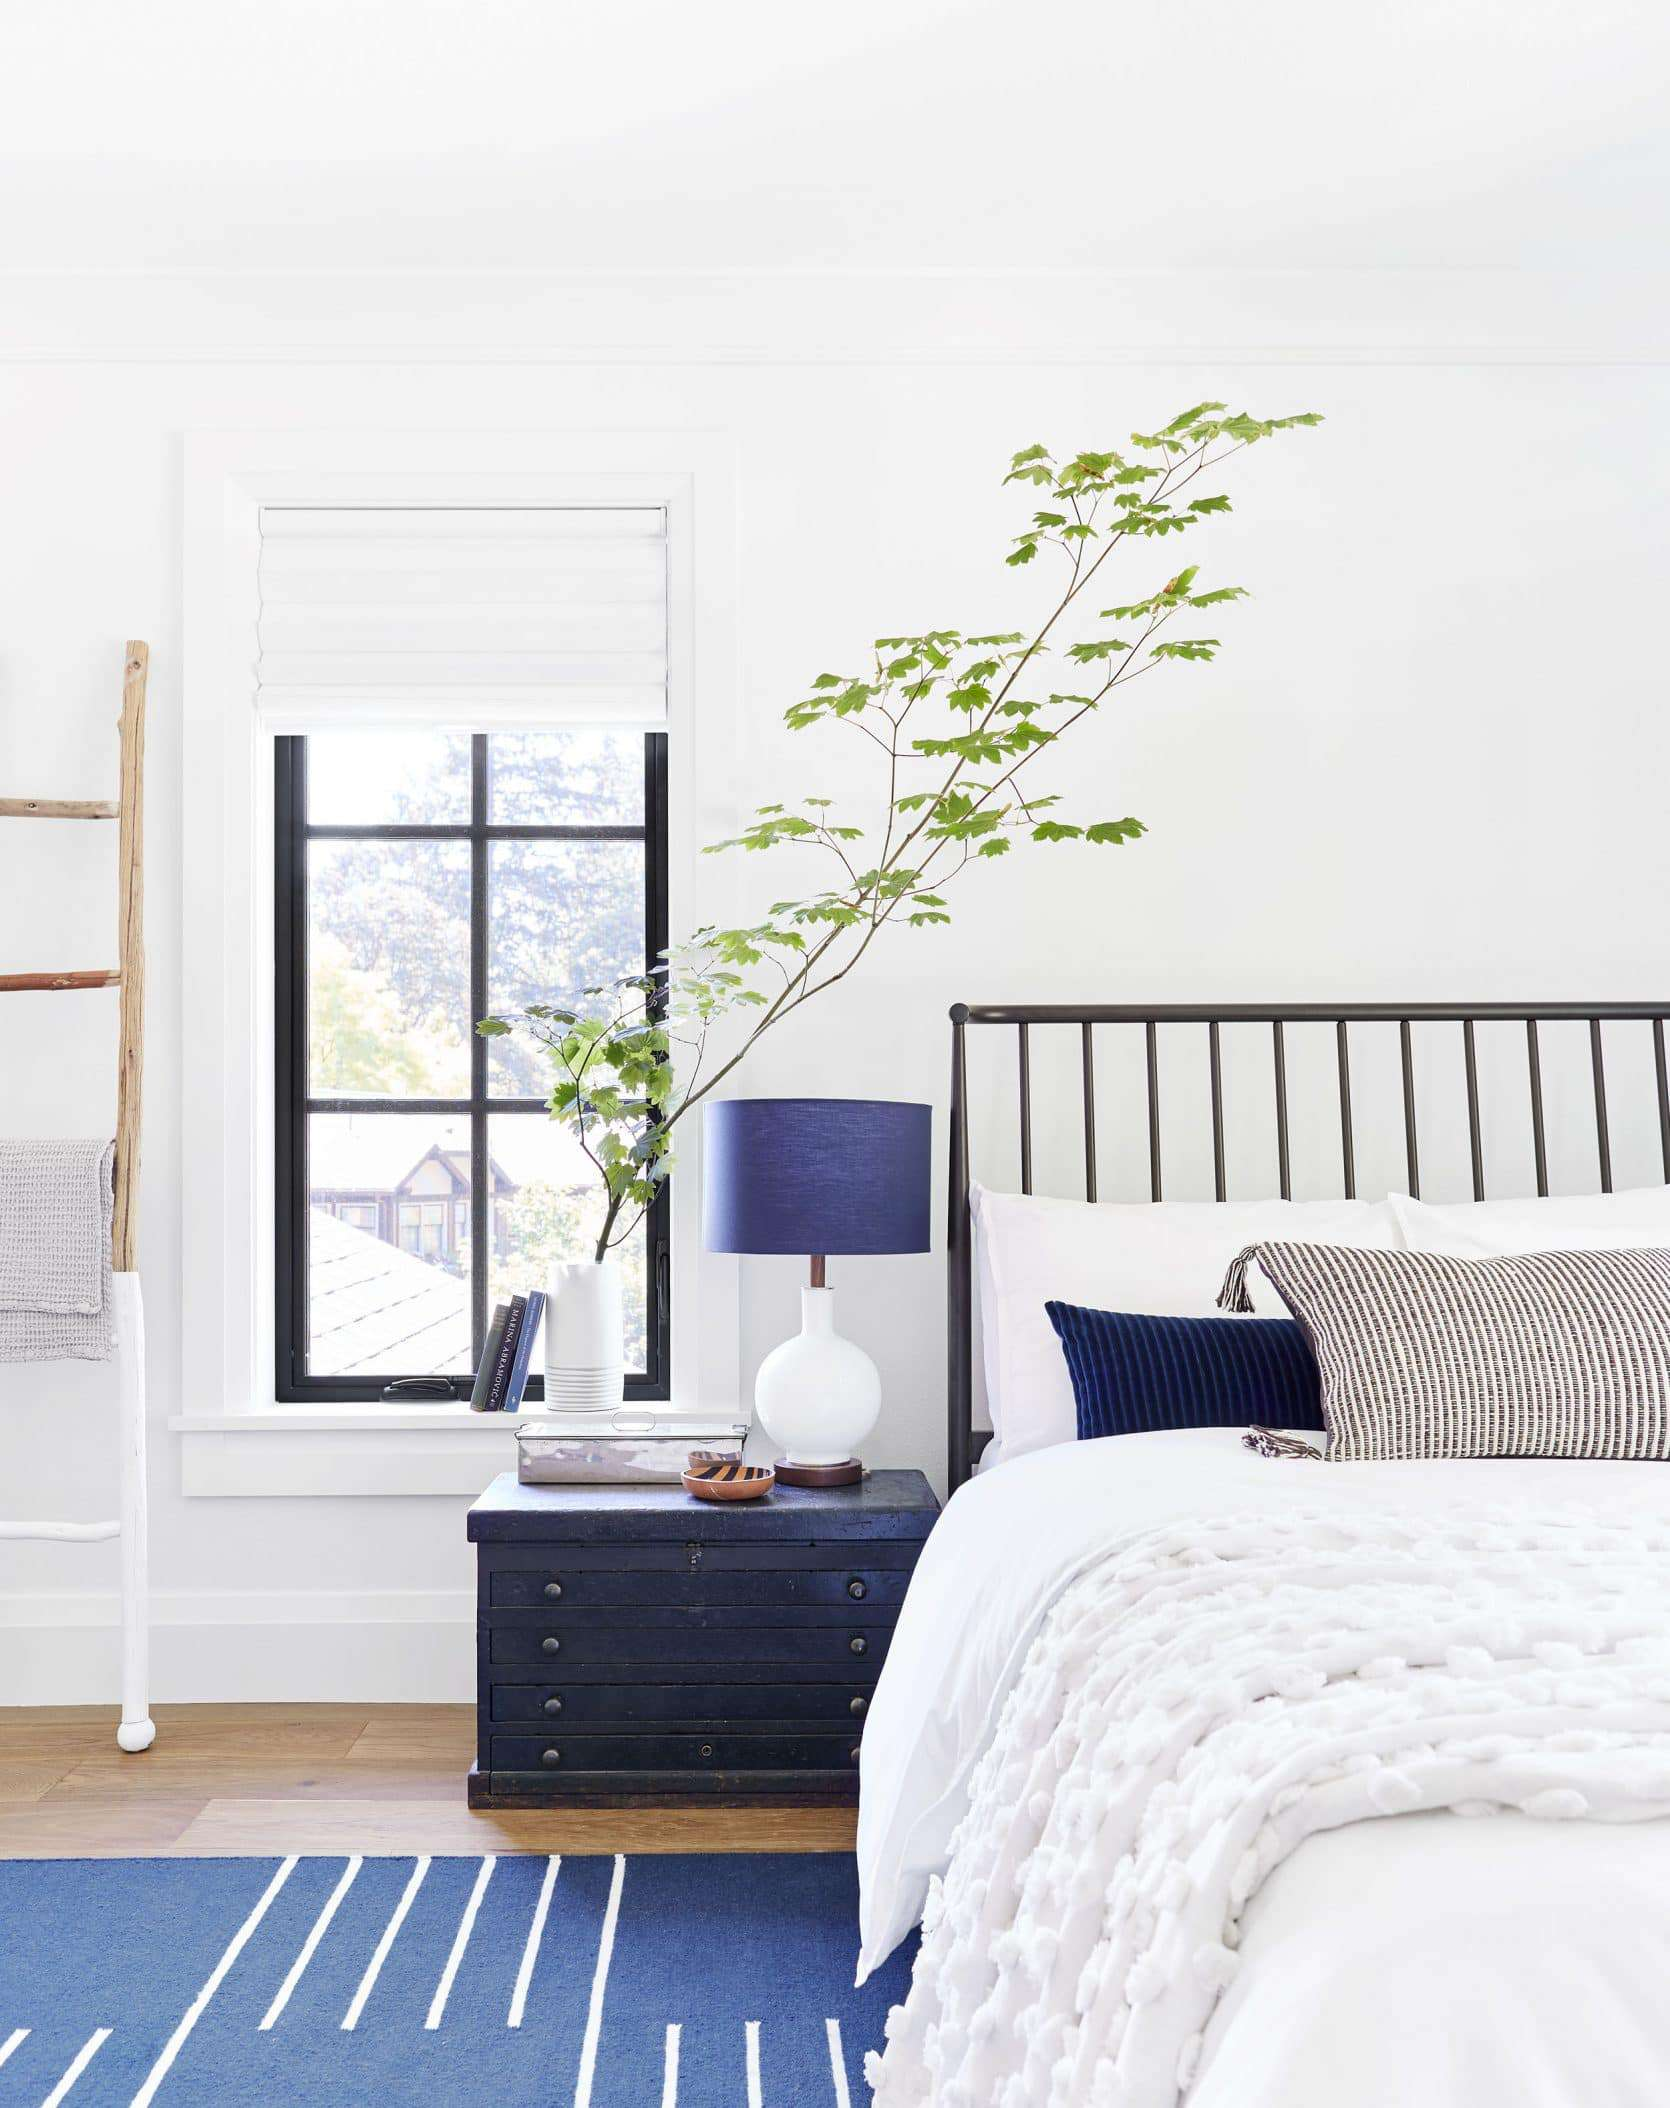 14 Rules To Follow To Design Style The Perfect Bedroom